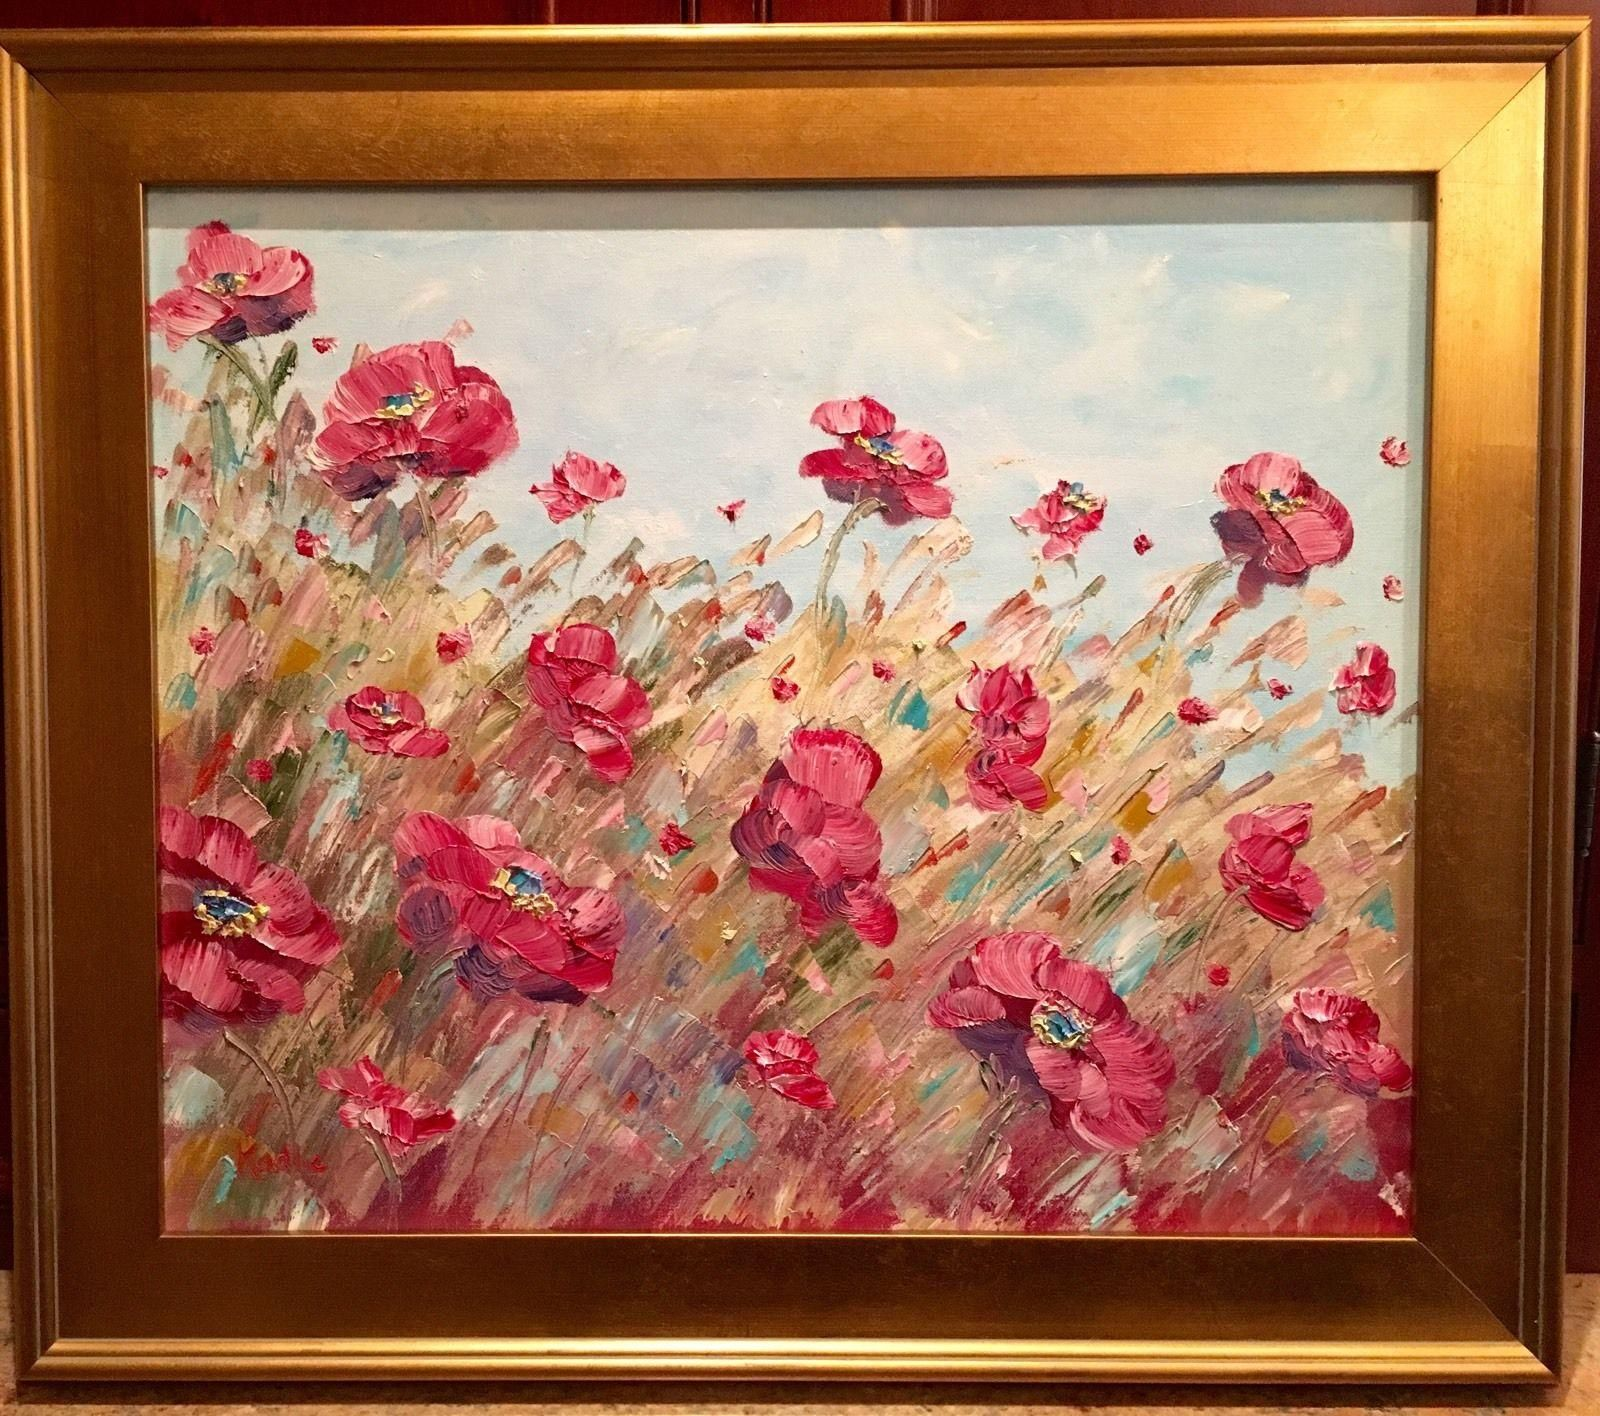 French Wild Poppies, Original Oil Painting by artist Sarah